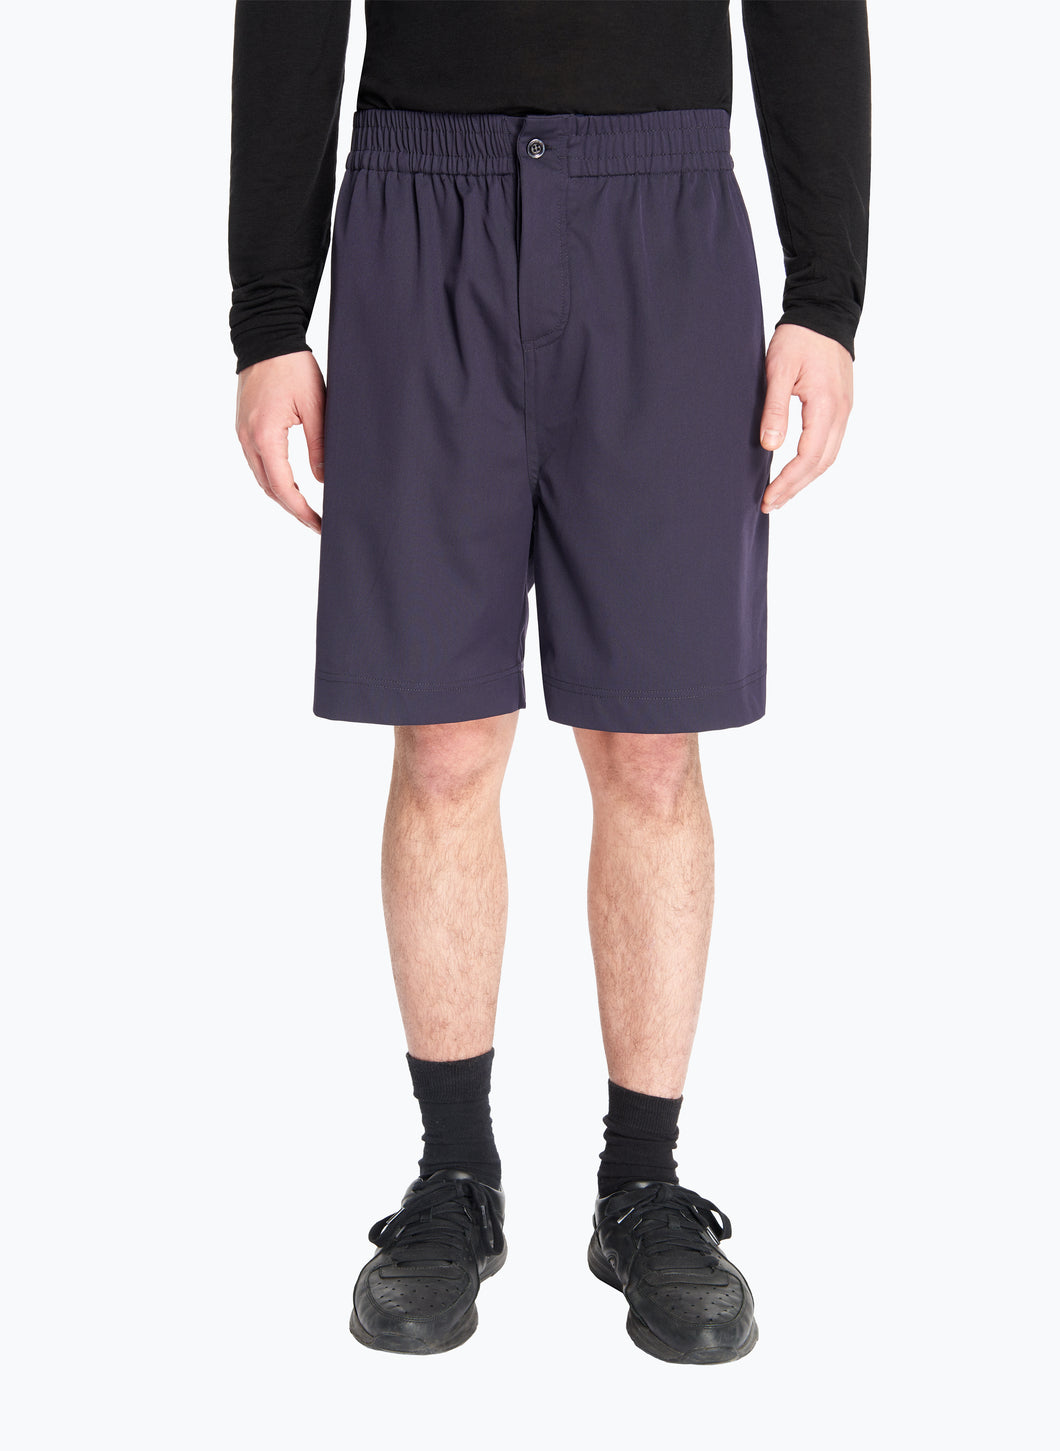 Bermuda Shorts with Stitched Waist in Navy Blue Cool Wool